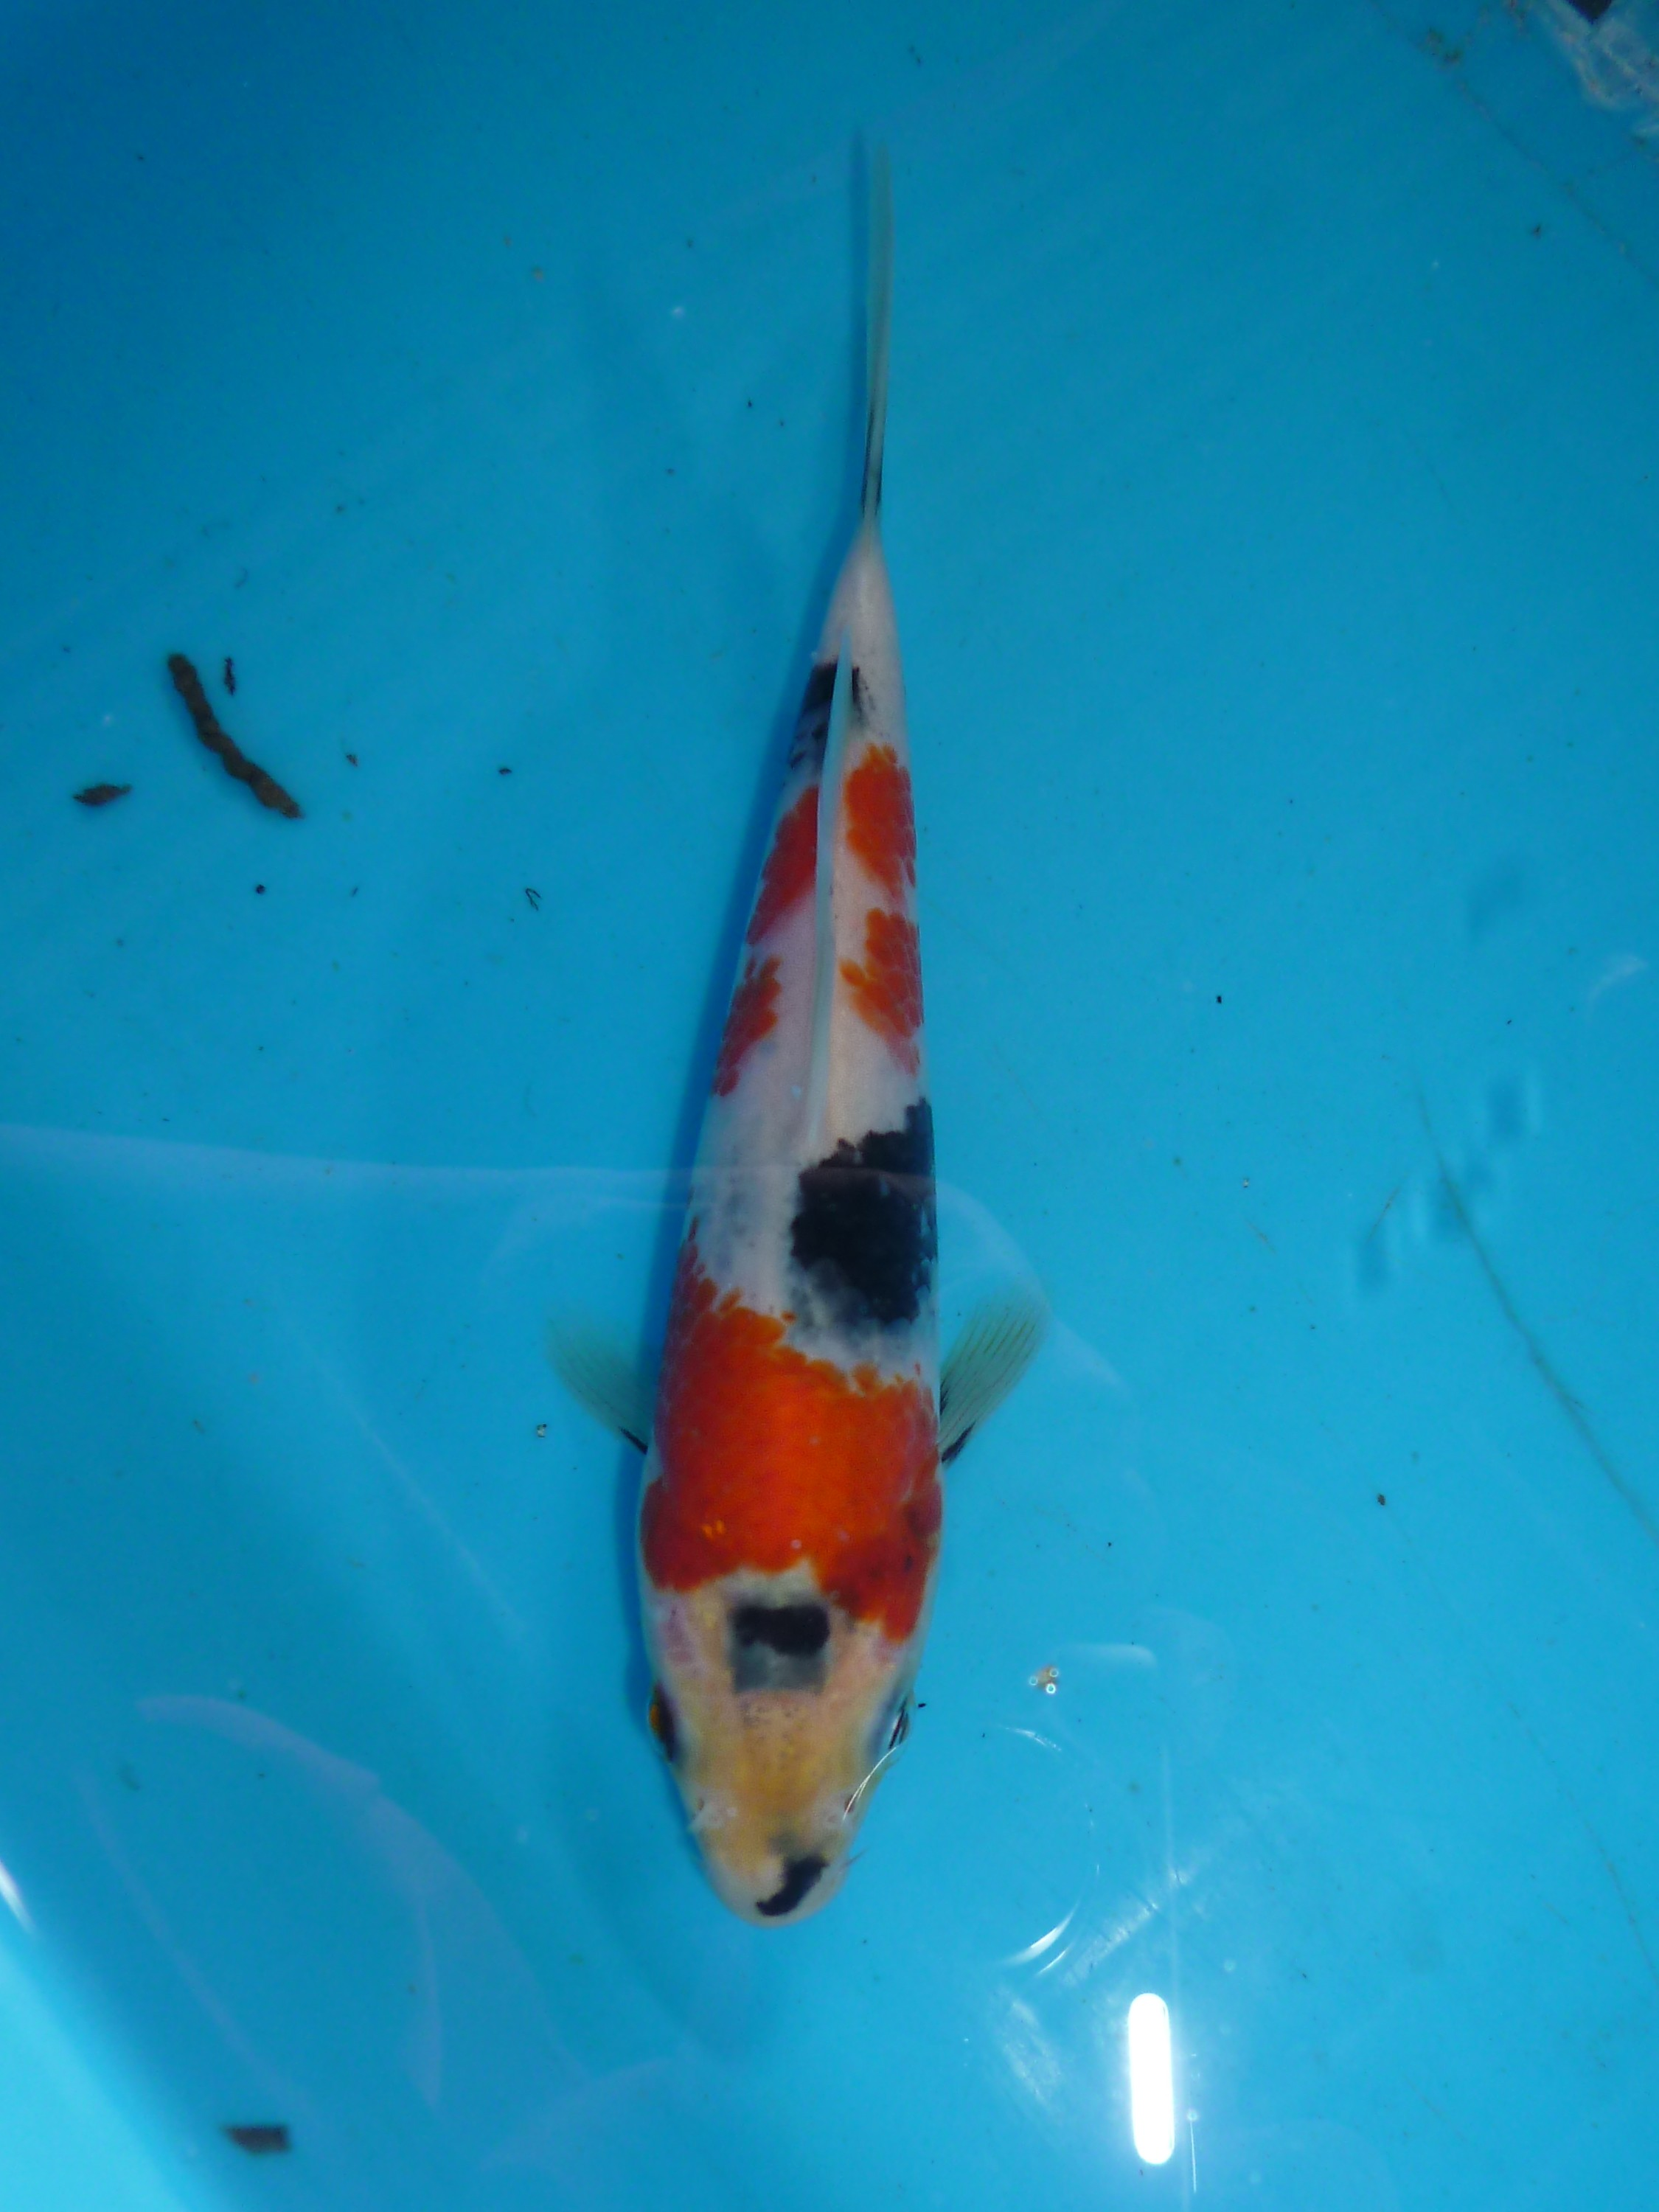 Marugen koi farm show quality showa koi fishes for sale for Koi fish for sale